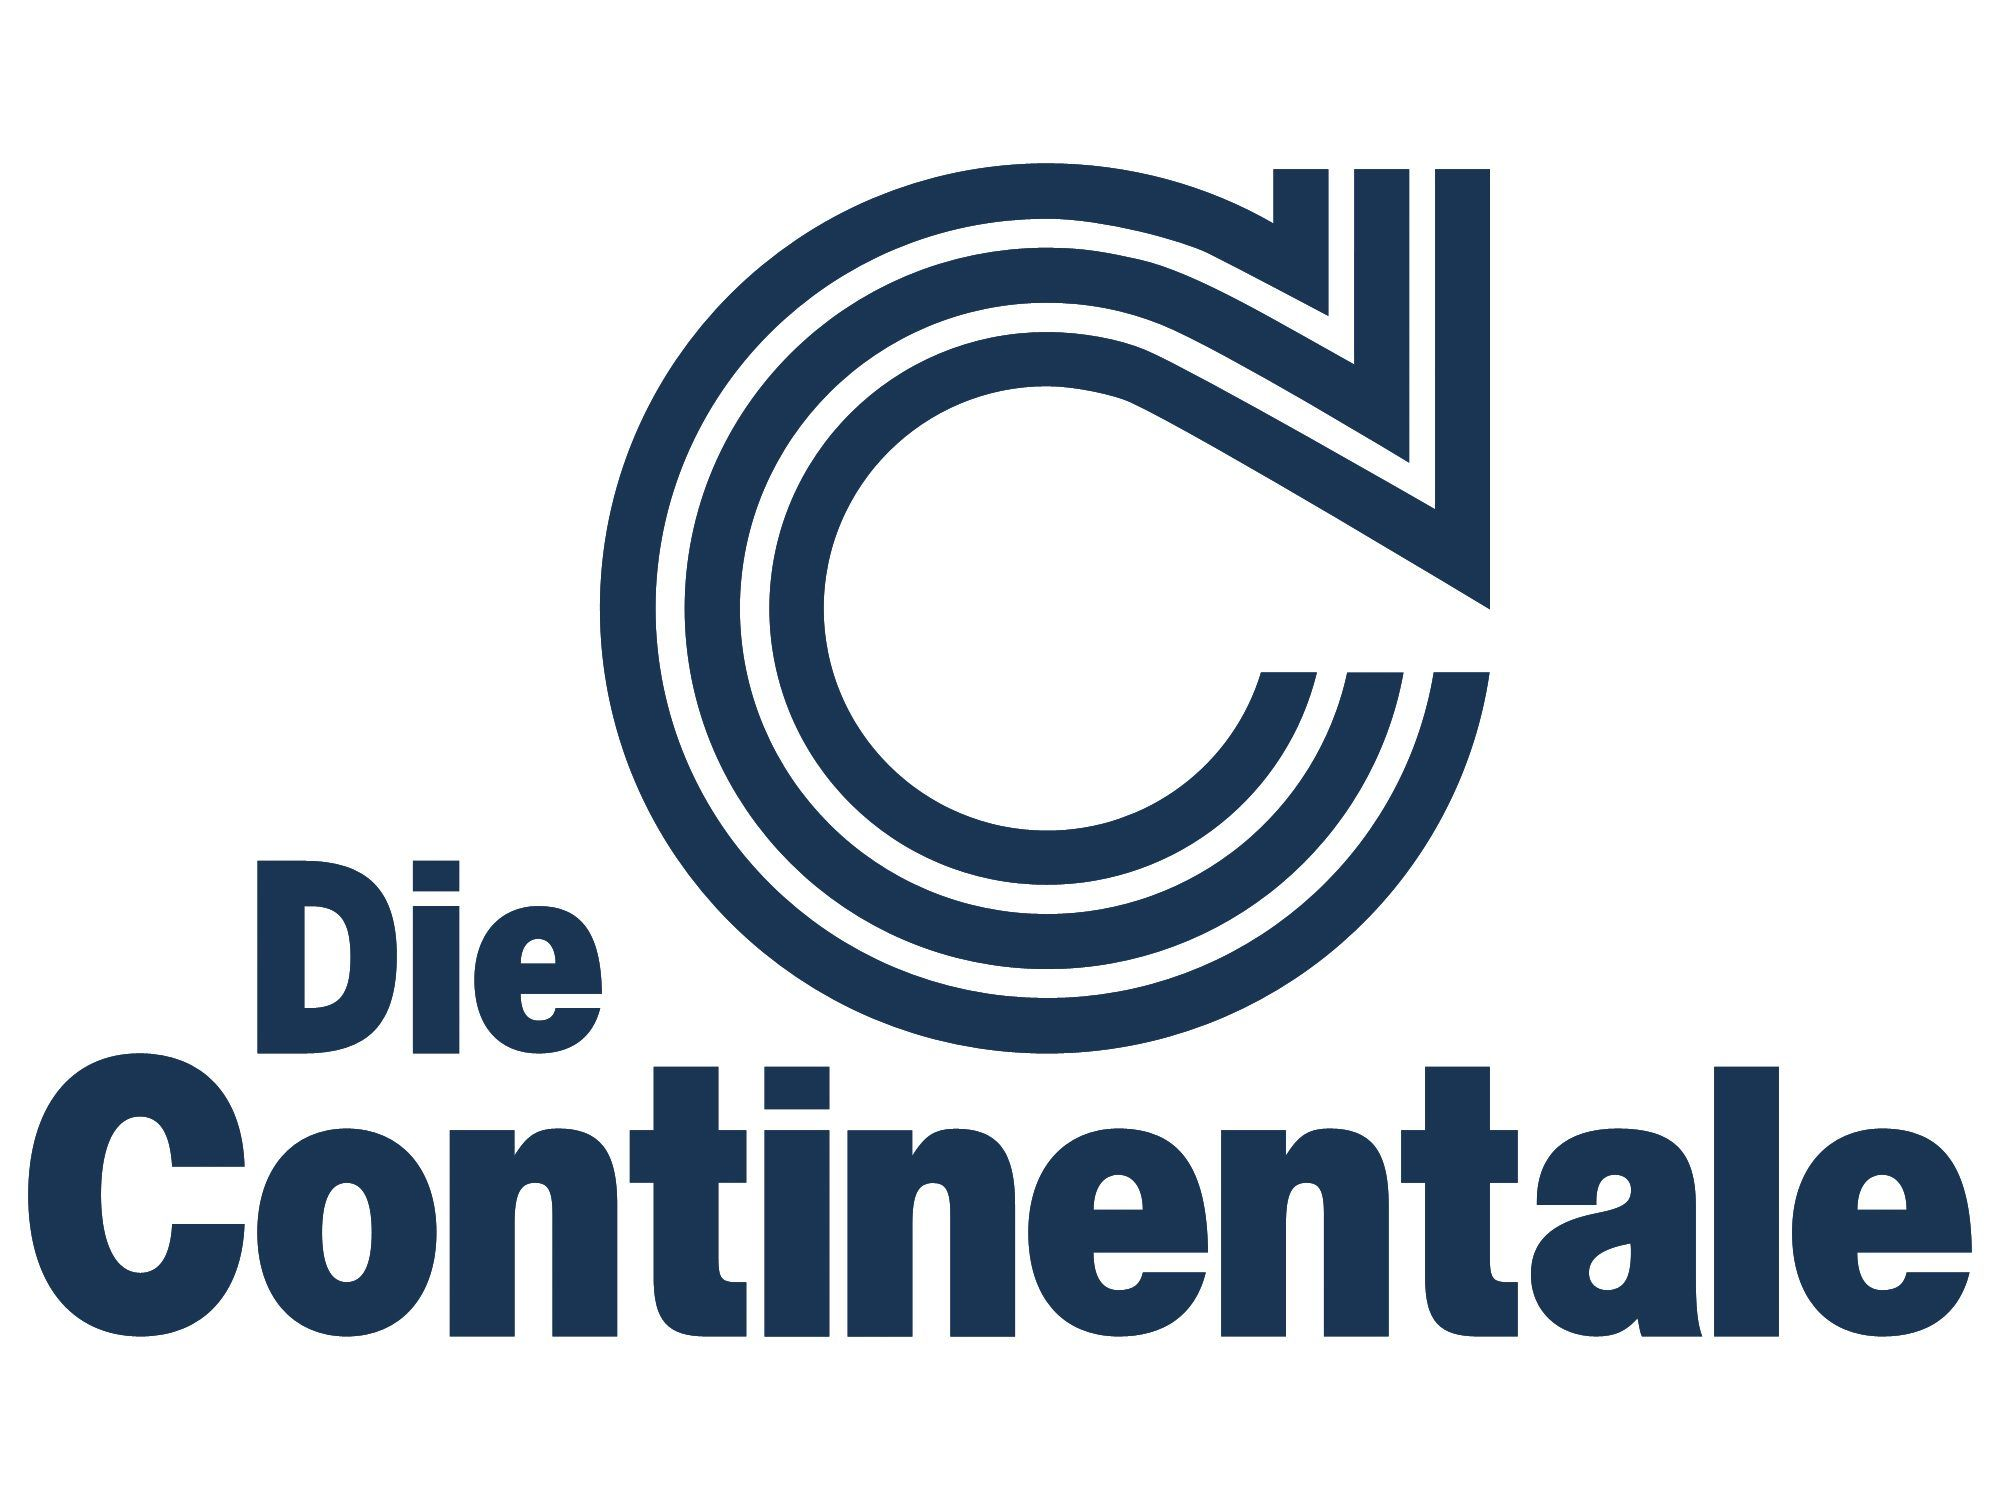 Continentale Seel & Wagner GmbH